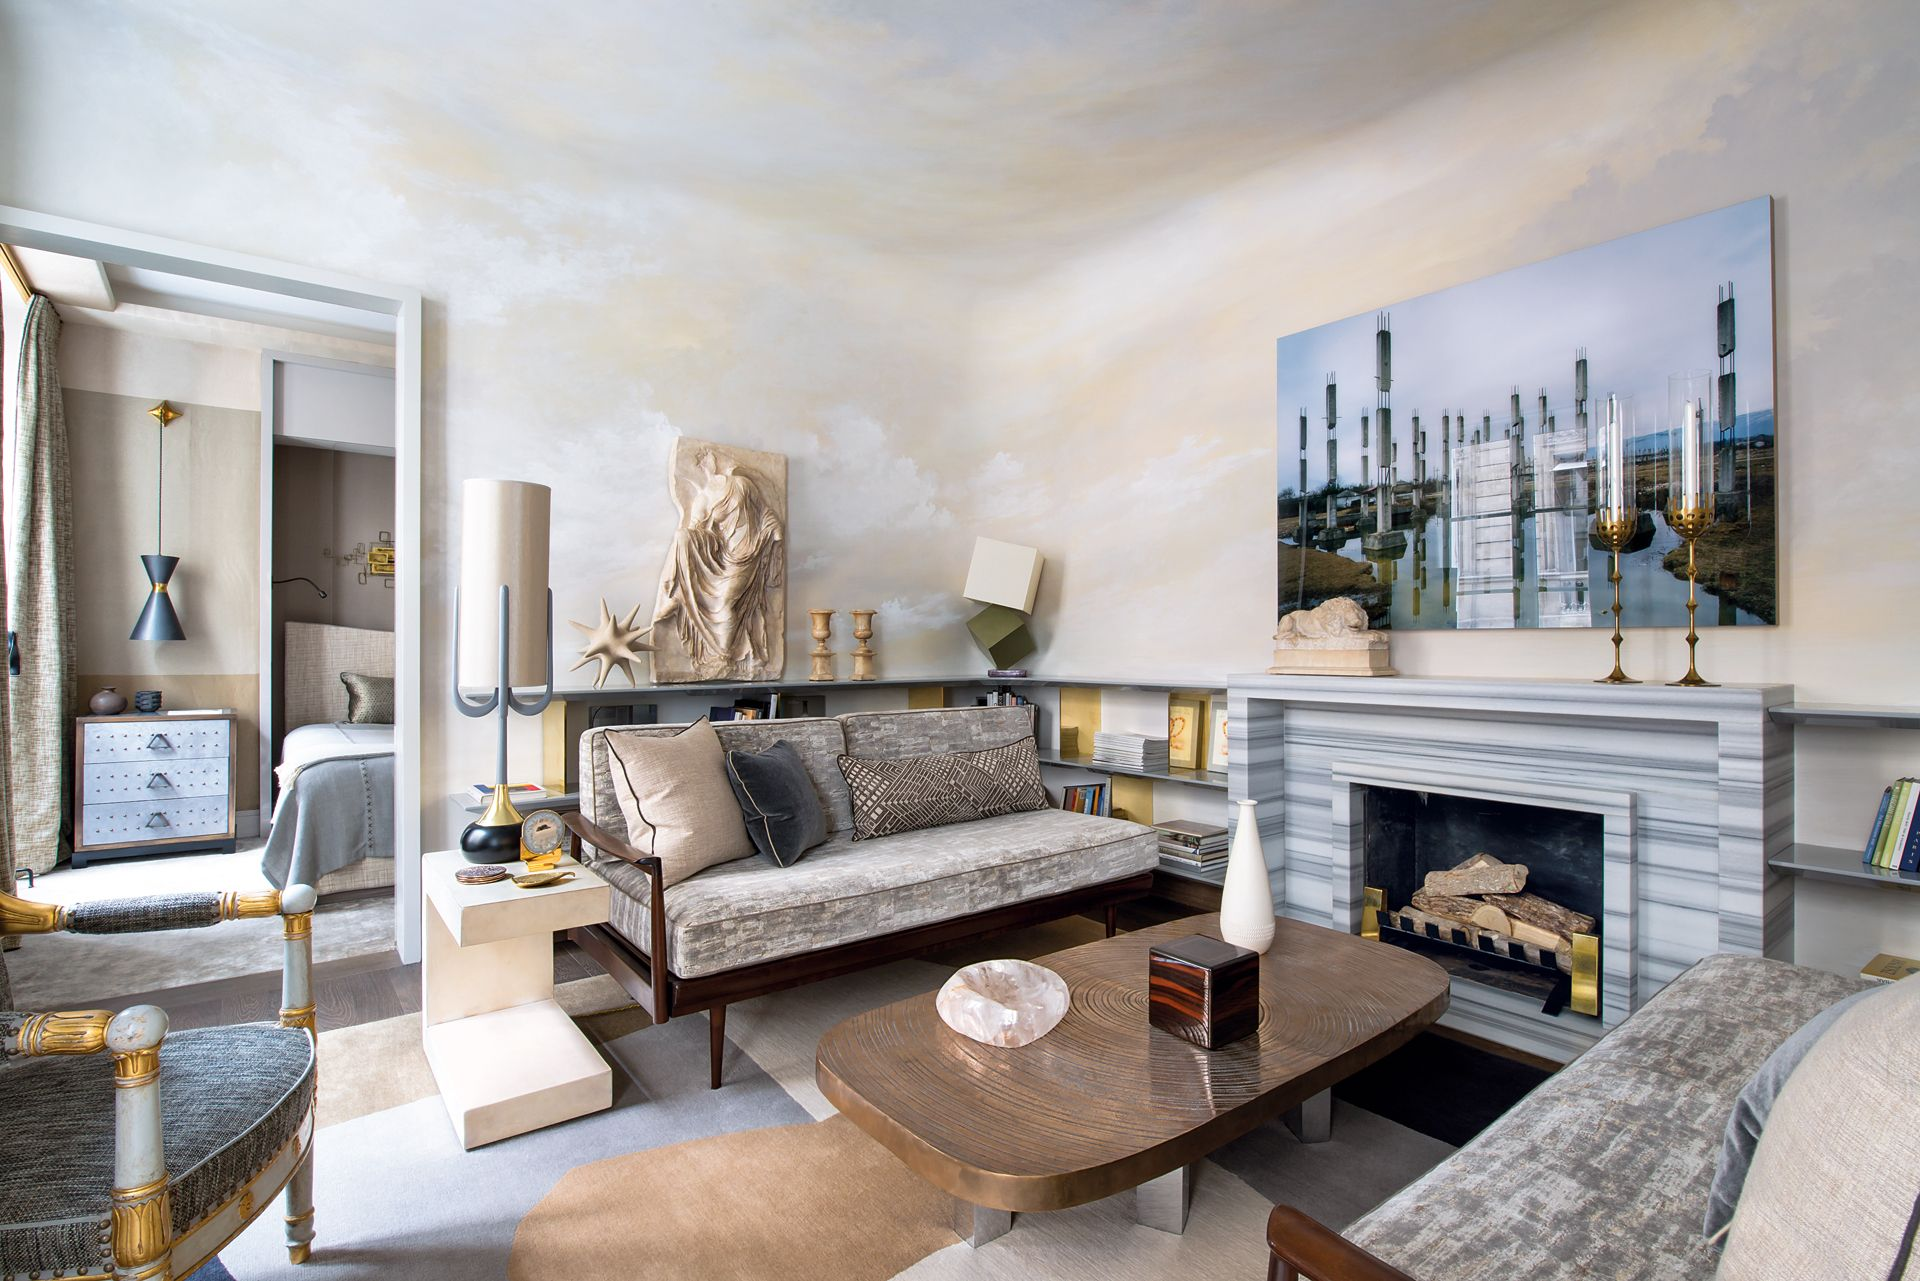 While his interior designs heavily reference the